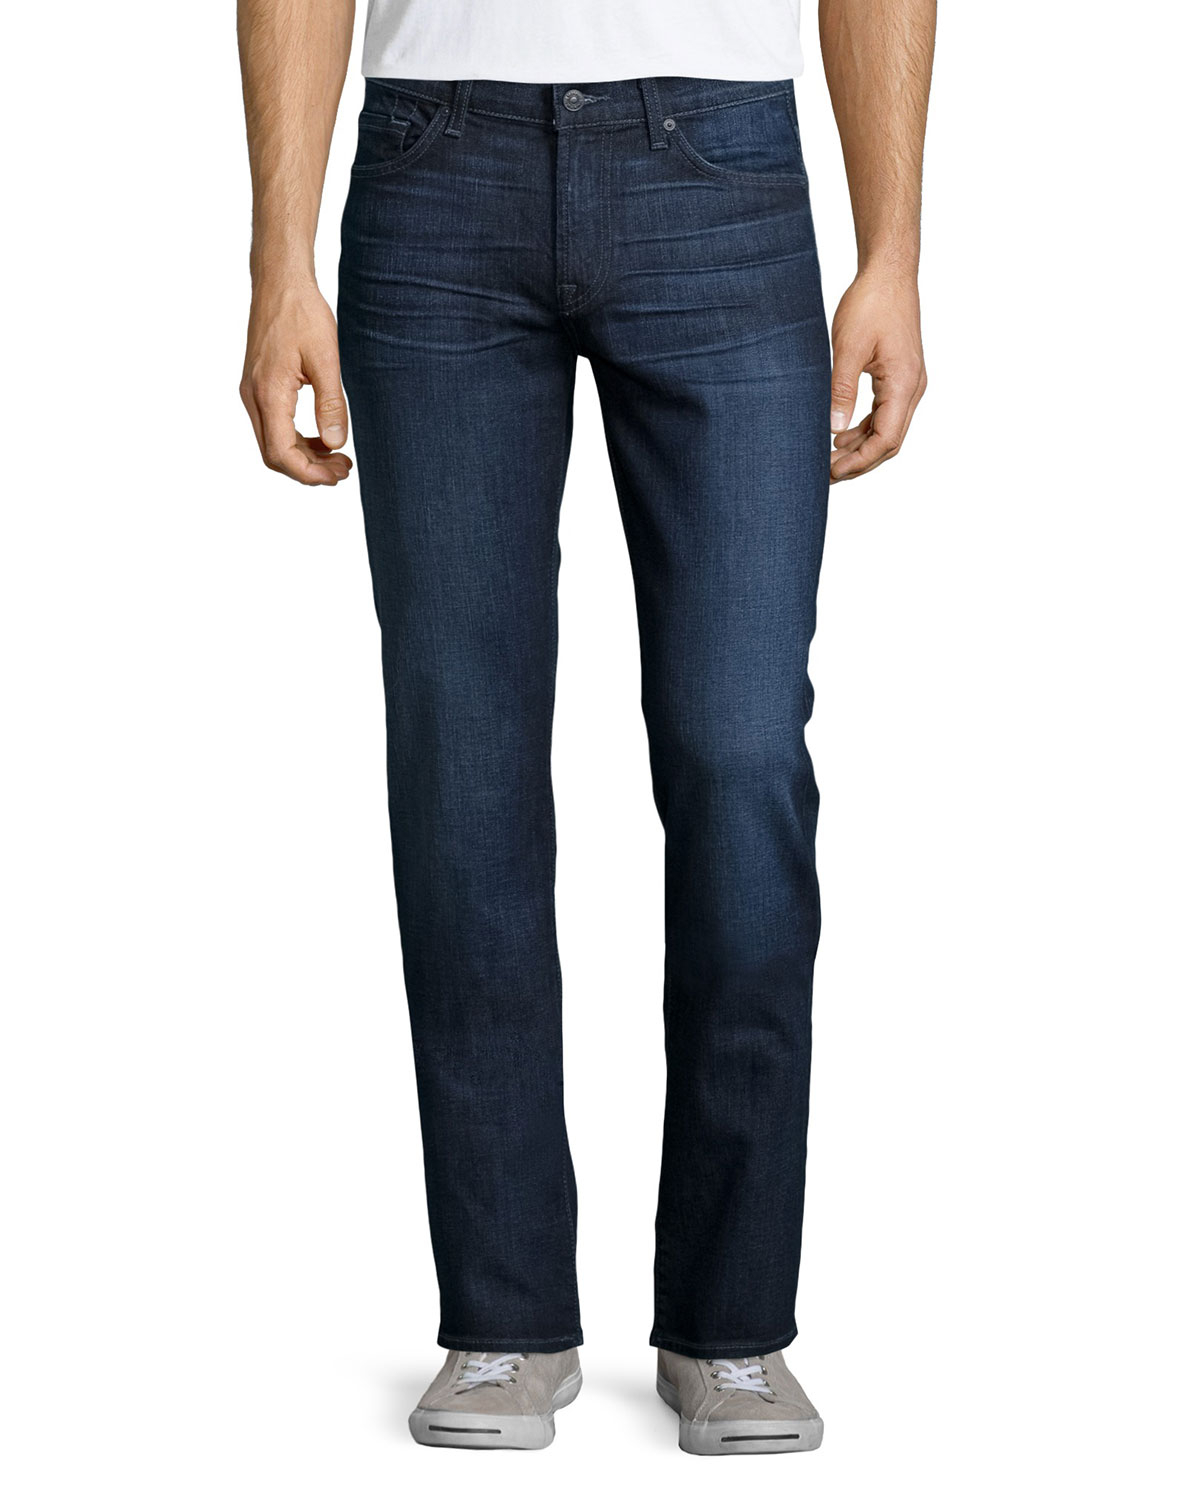 7 for all mankind slimmy straight leg jeans in blue for. Black Bedroom Furniture Sets. Home Design Ideas